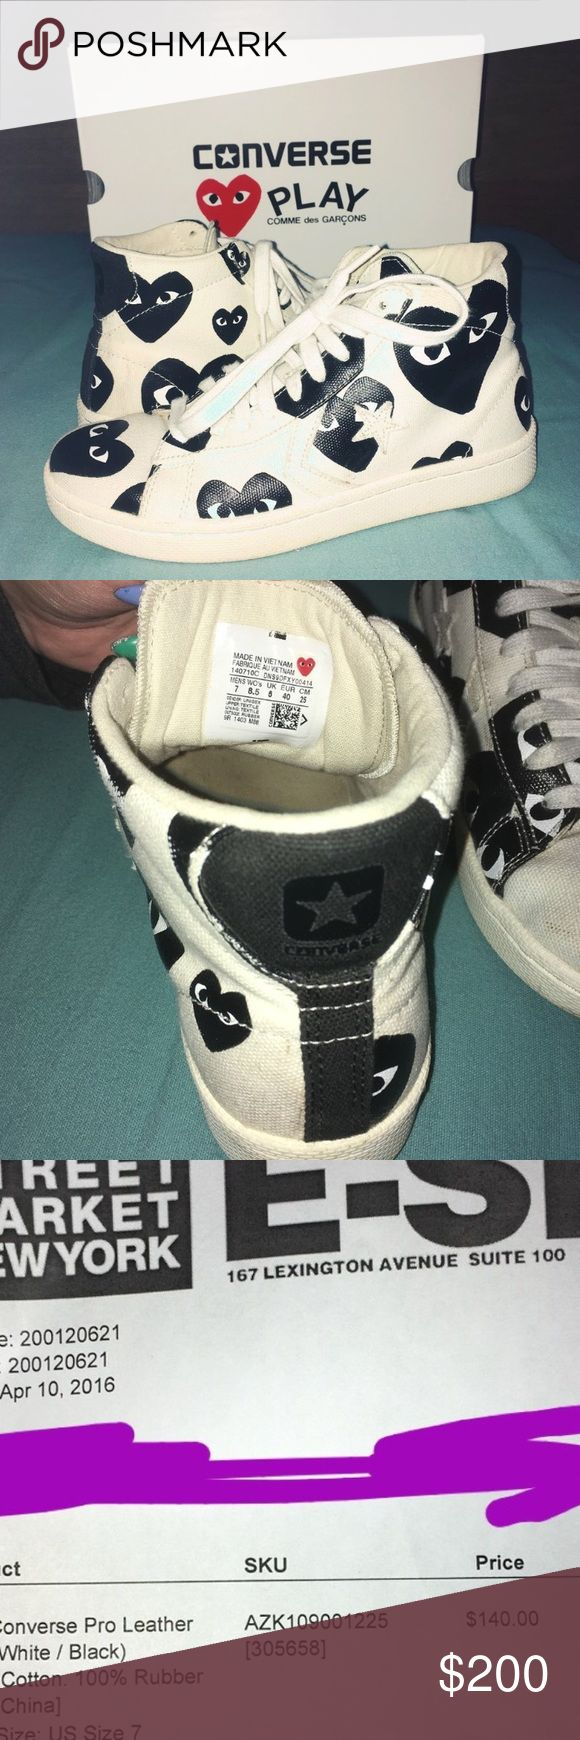 Comme des Garcon shoes still in good condition worn a couple times,no wear  and